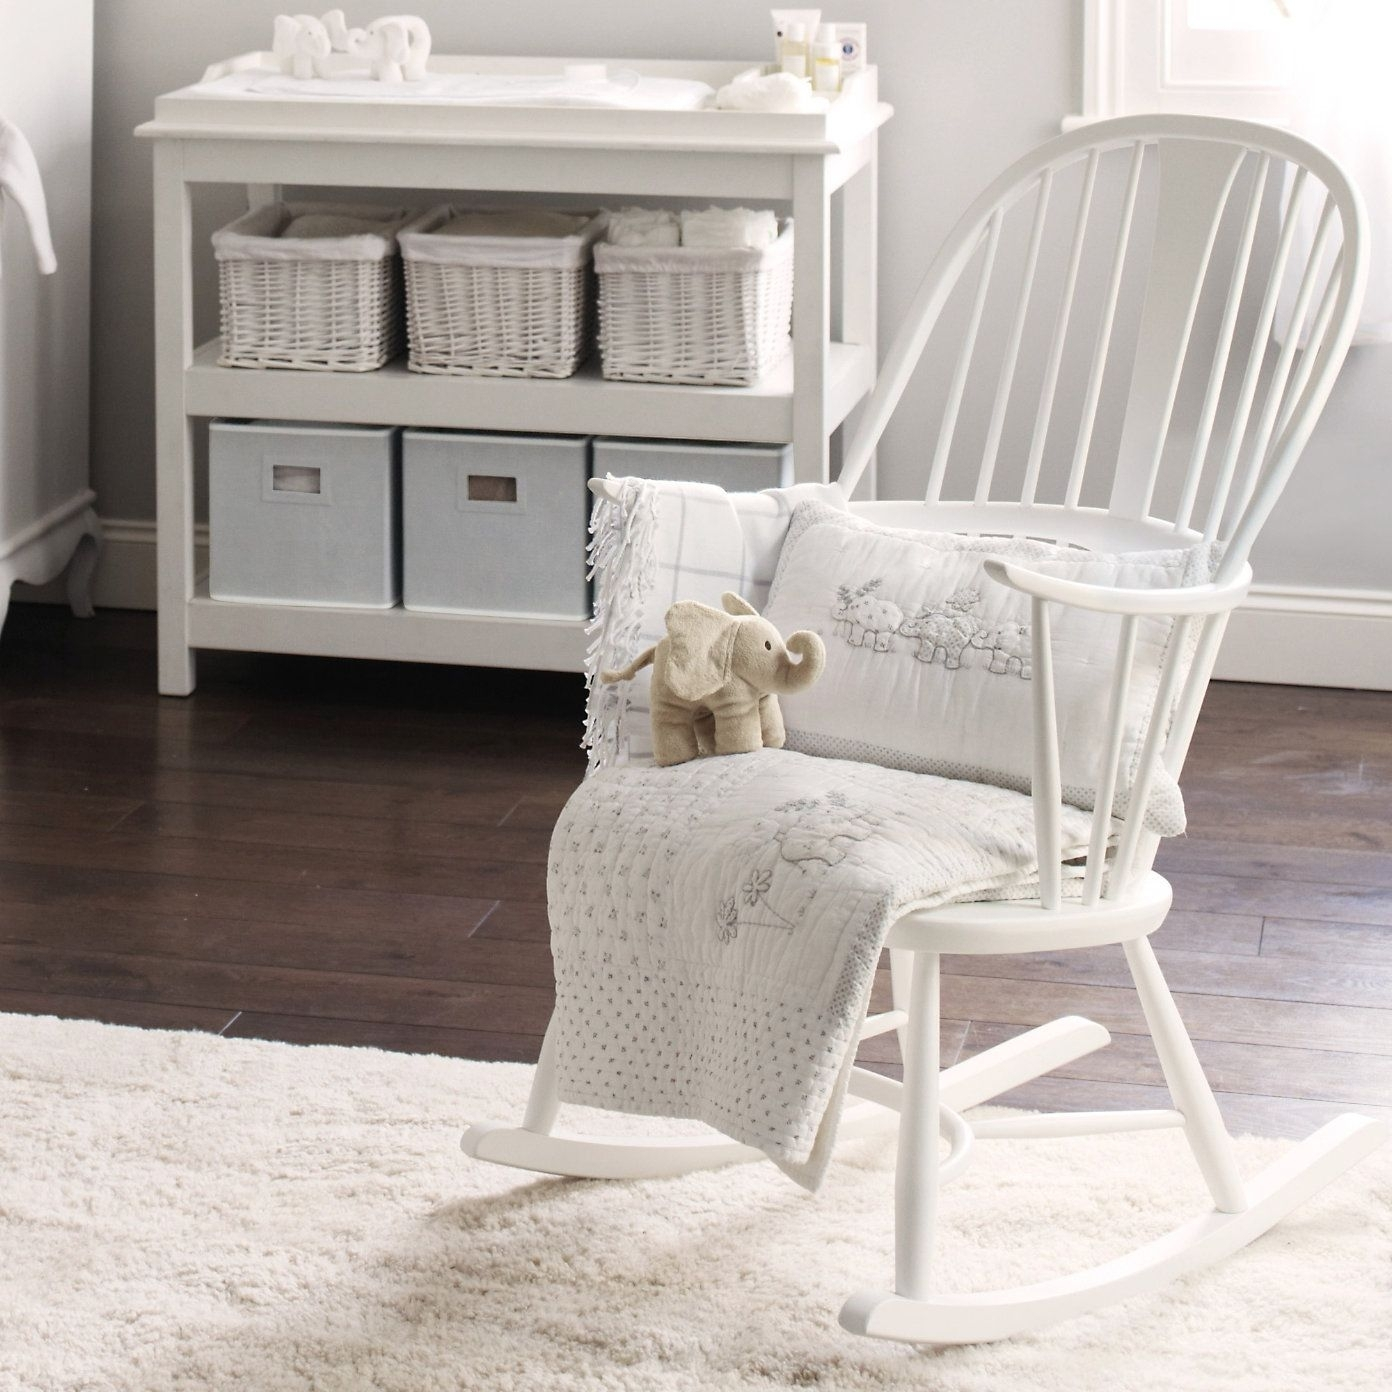 Buy Lookbooks > Home > Ercol Rocking Chair – White From The White Throughout Rocking Chairs For Baby Room (View 11 of 15)